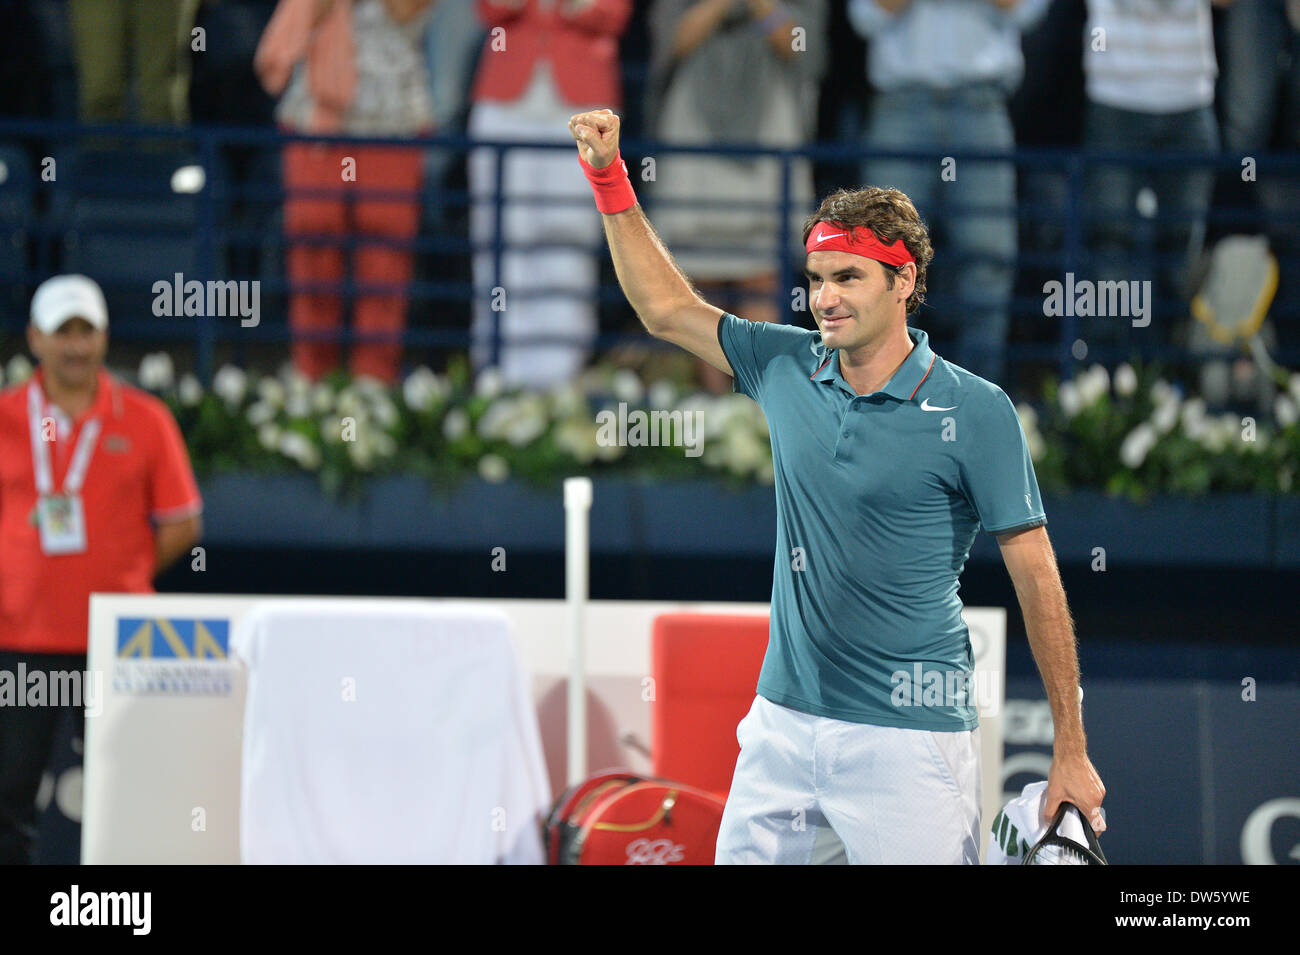 DUBAI, UAE, 27th Feb 2014. Roger Federer celebrates his victory against Novak Djokovic in the quarterfinals of the Dubai Duty Free Tennis Championships. Federer advanced to the finals of the tournament with a 3-6 6-3 6-2 victory Credit:  Feroz Khan/Alamy Live News - Stock Image